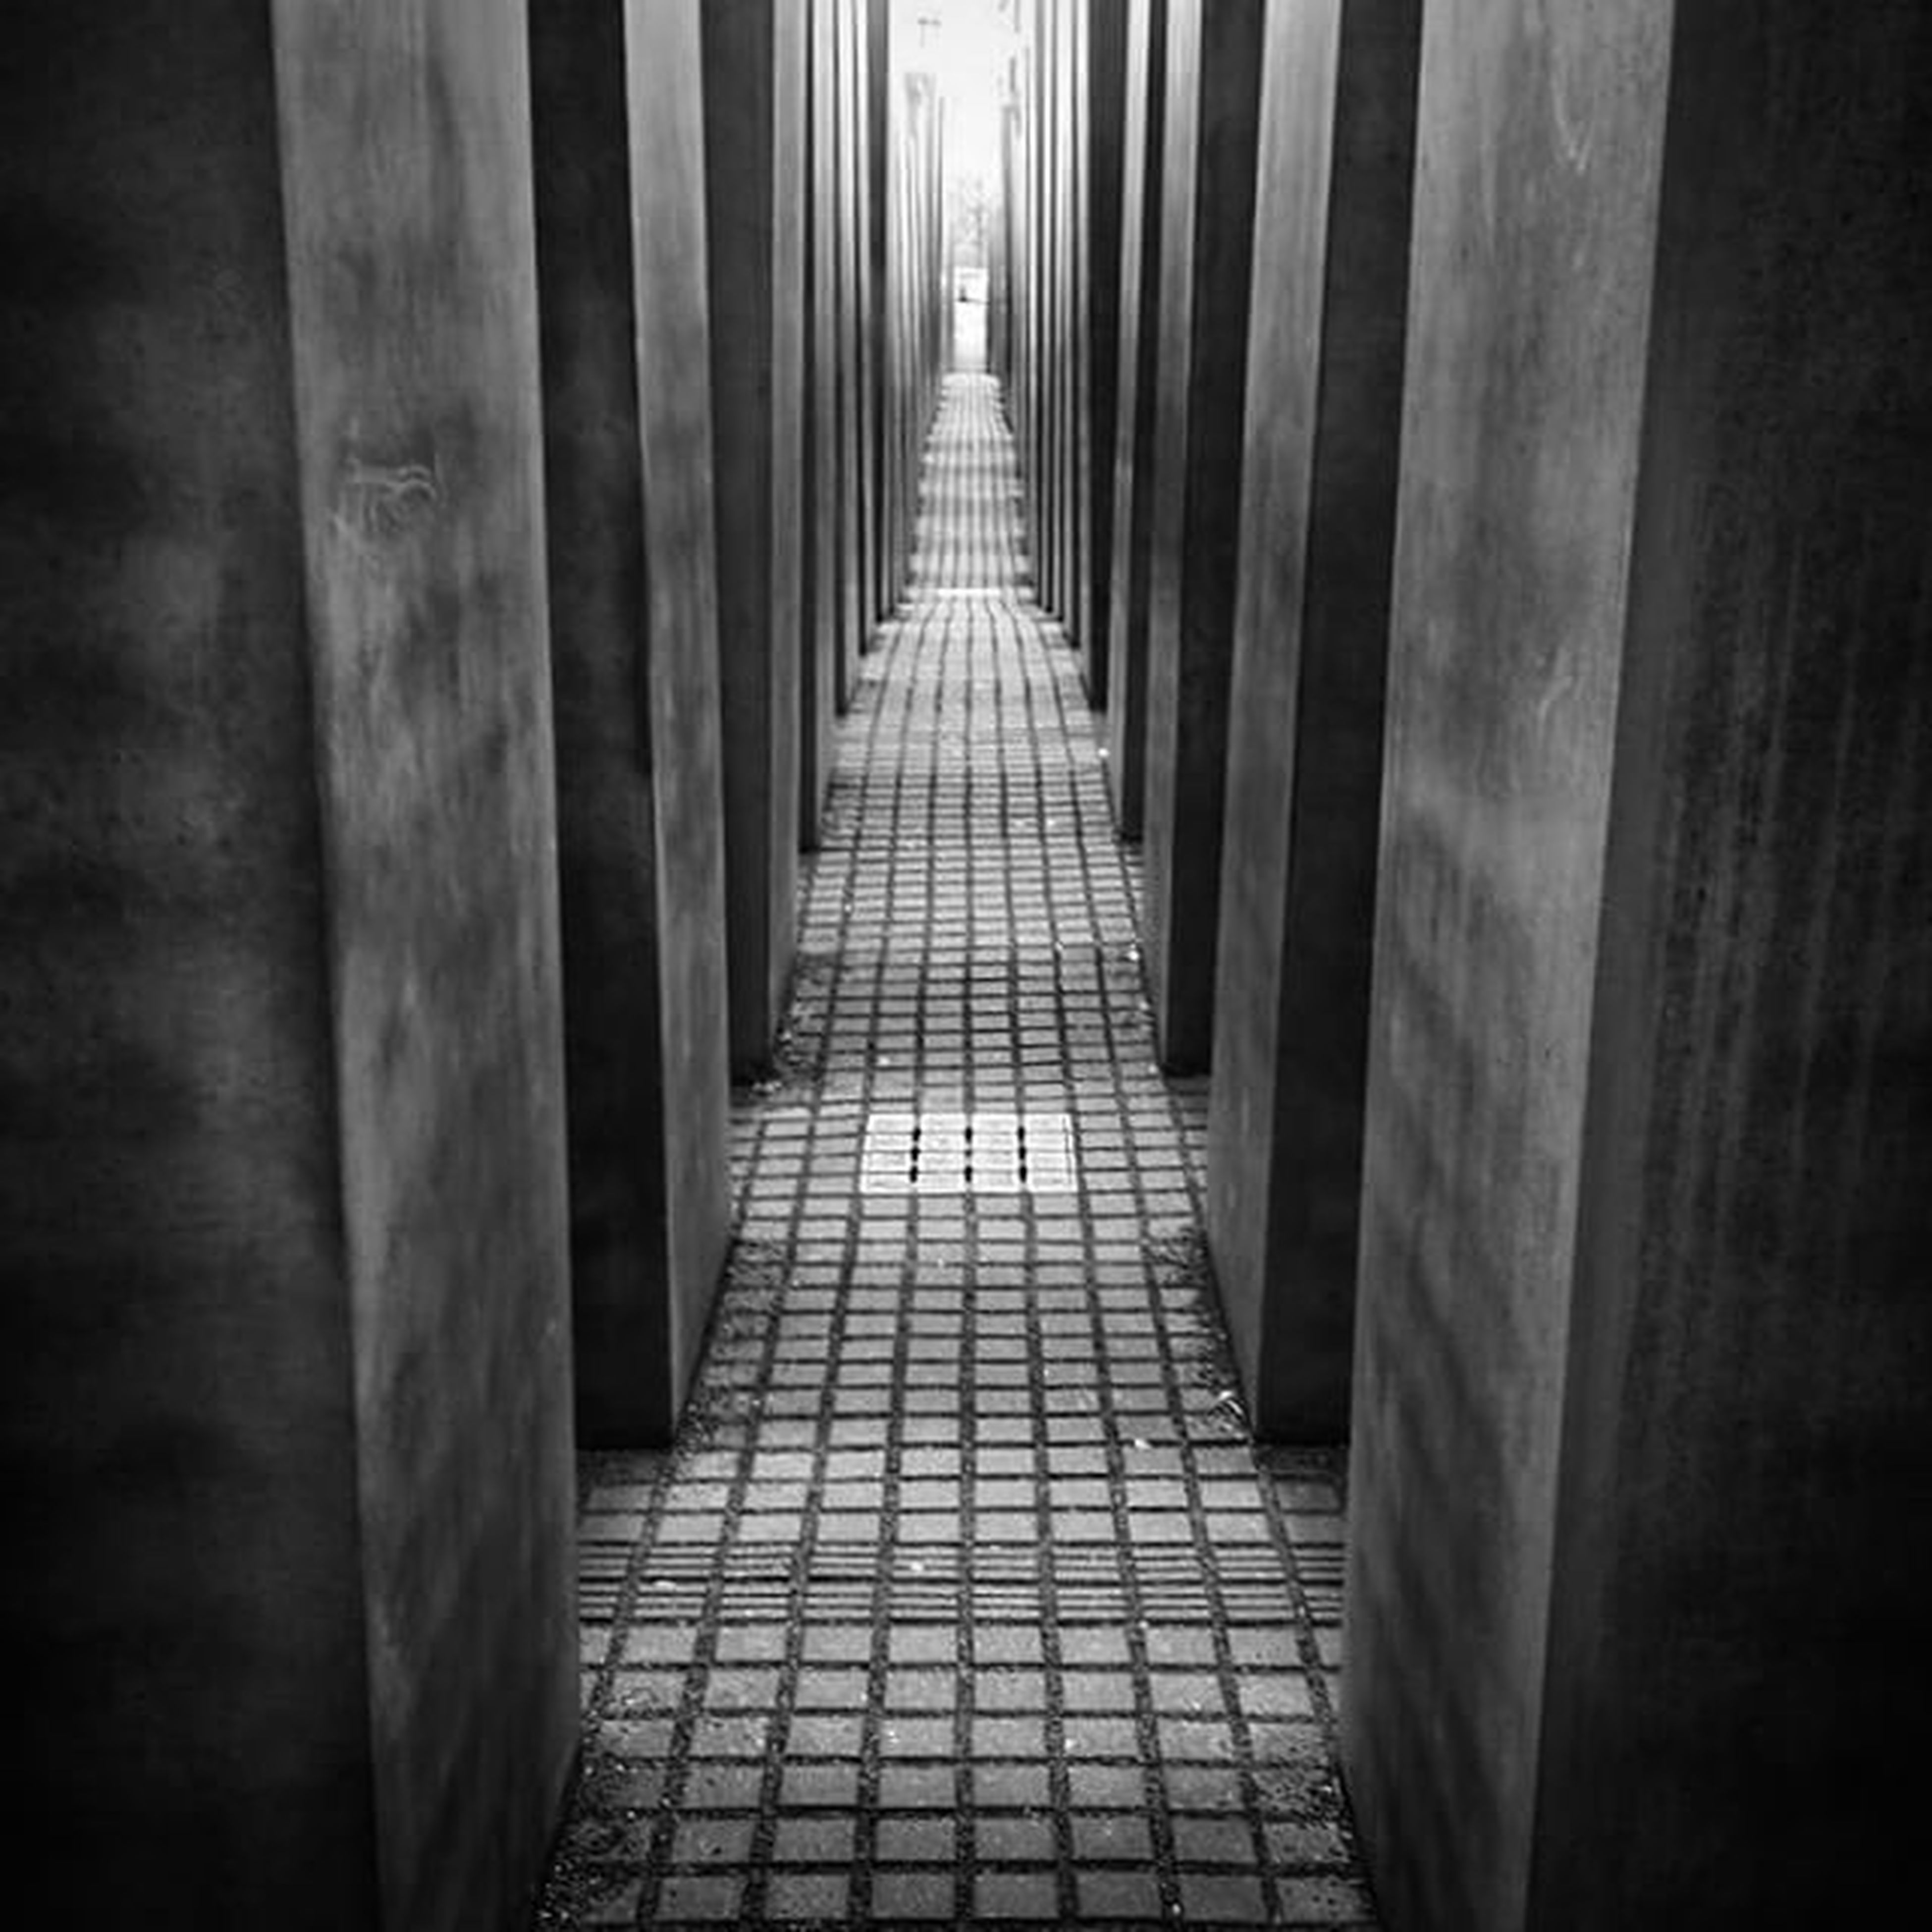 reminder holocaust memorial, Berlin Rsa_bnw_minimal2 Berlin Memorial Minimal perspective bw bw_lover bw_society lowkey bnw_life bnw_captures bnw bnw_society grayscale monochrome architecture cityscape urban photography ig_europe